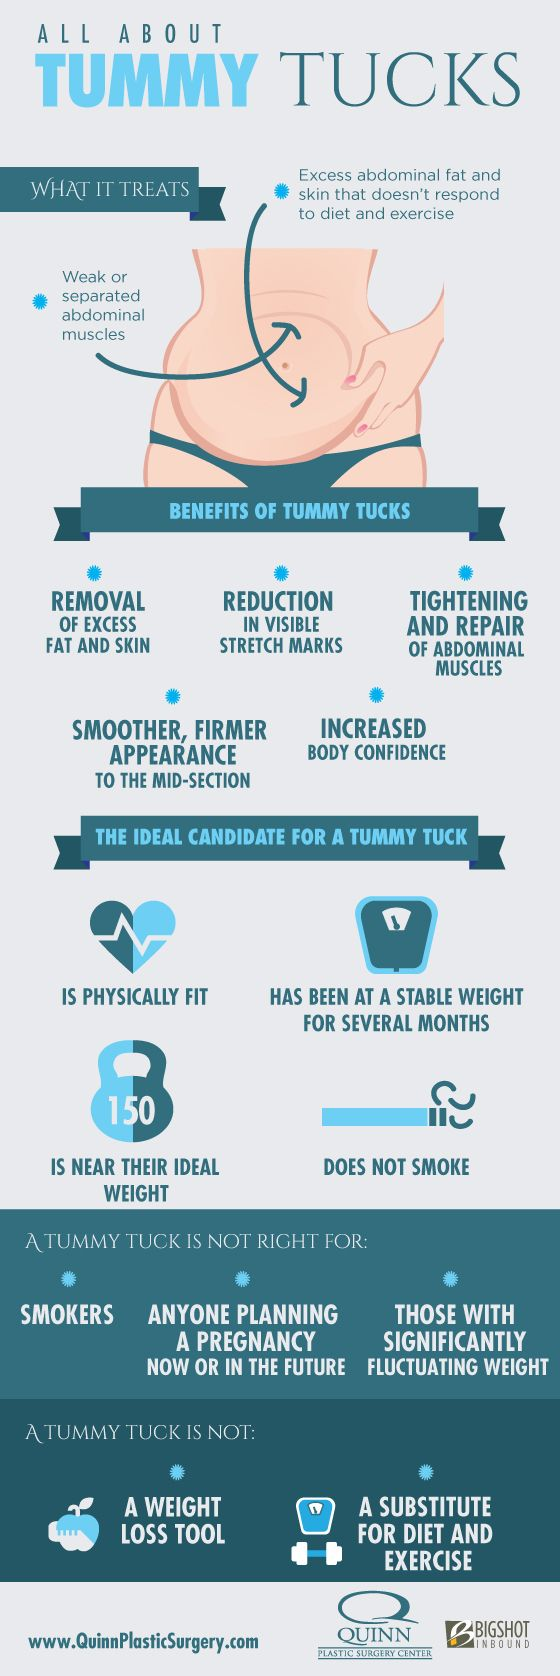 No matter how hard you work out or how healthy your diet is, do you experience stubborn fat that just won't go away? Or, perhaps you've lost a large amount of weight and are now left with stretched, loose flaps of skin. If you've tried everything, and liposuction isn't going to cut it, perhaps it is time to consider abdominoplasty — also known as a tummy tuck.